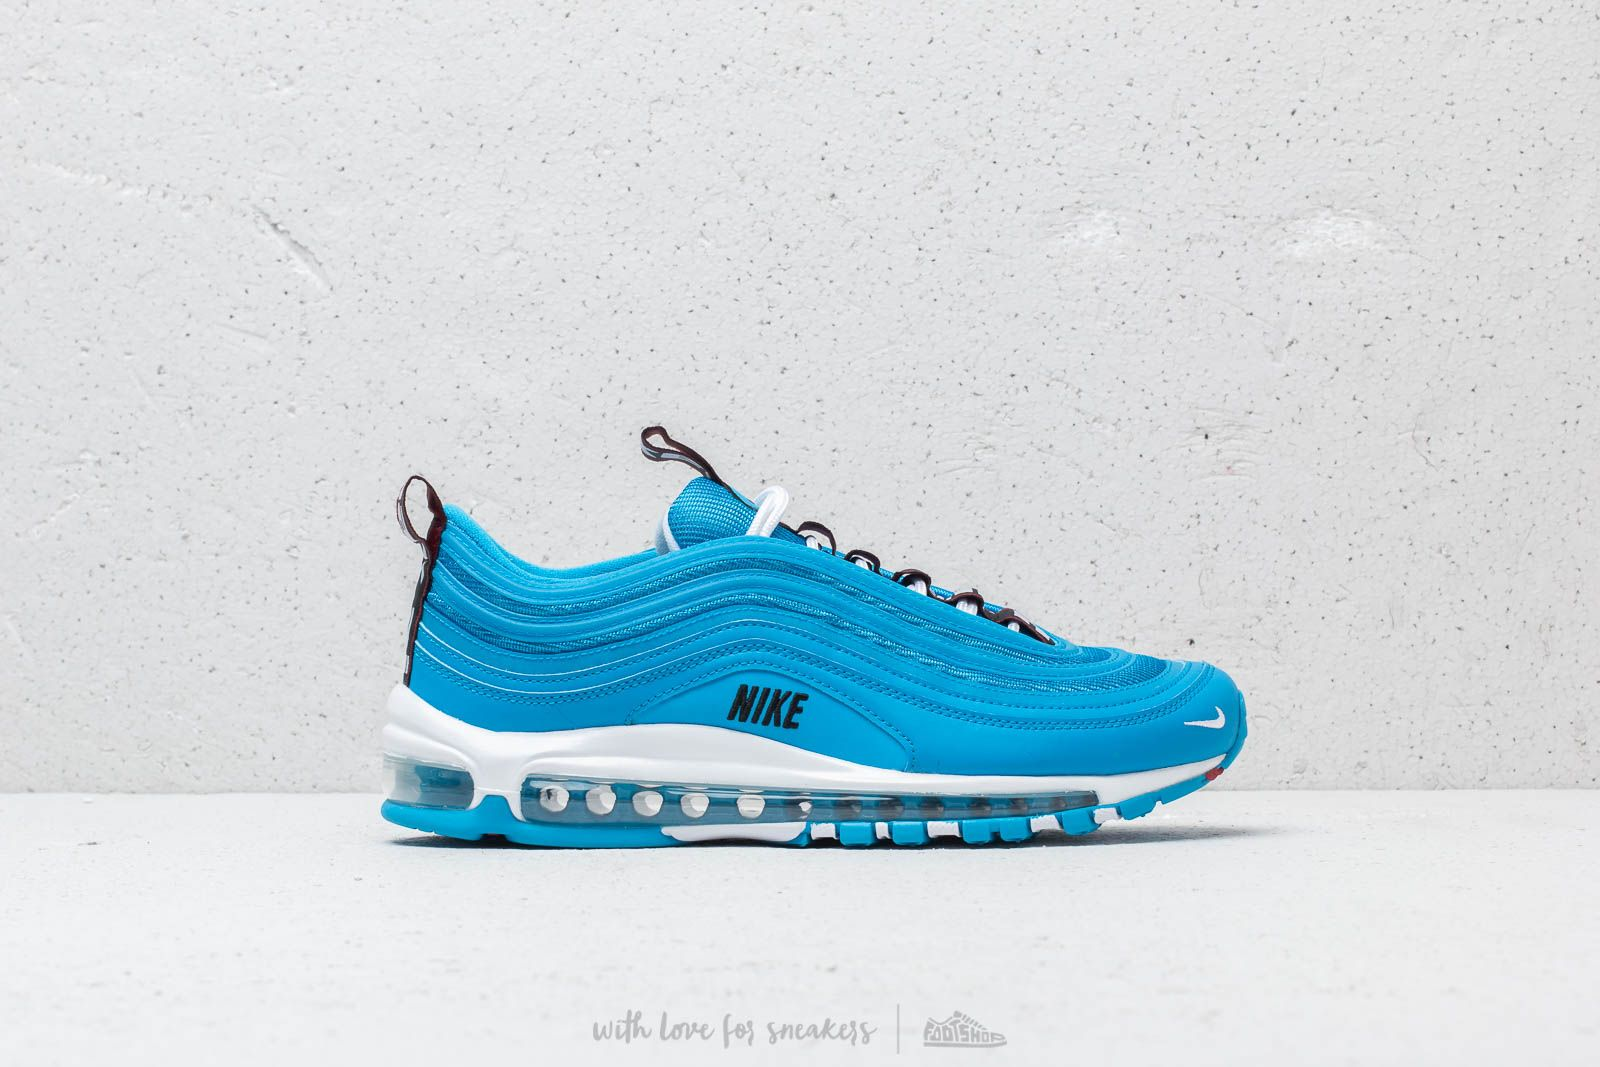 on sale d5702 45254 Nike Air Max 97 Premium Blue Hero  White  Black at a great price 183